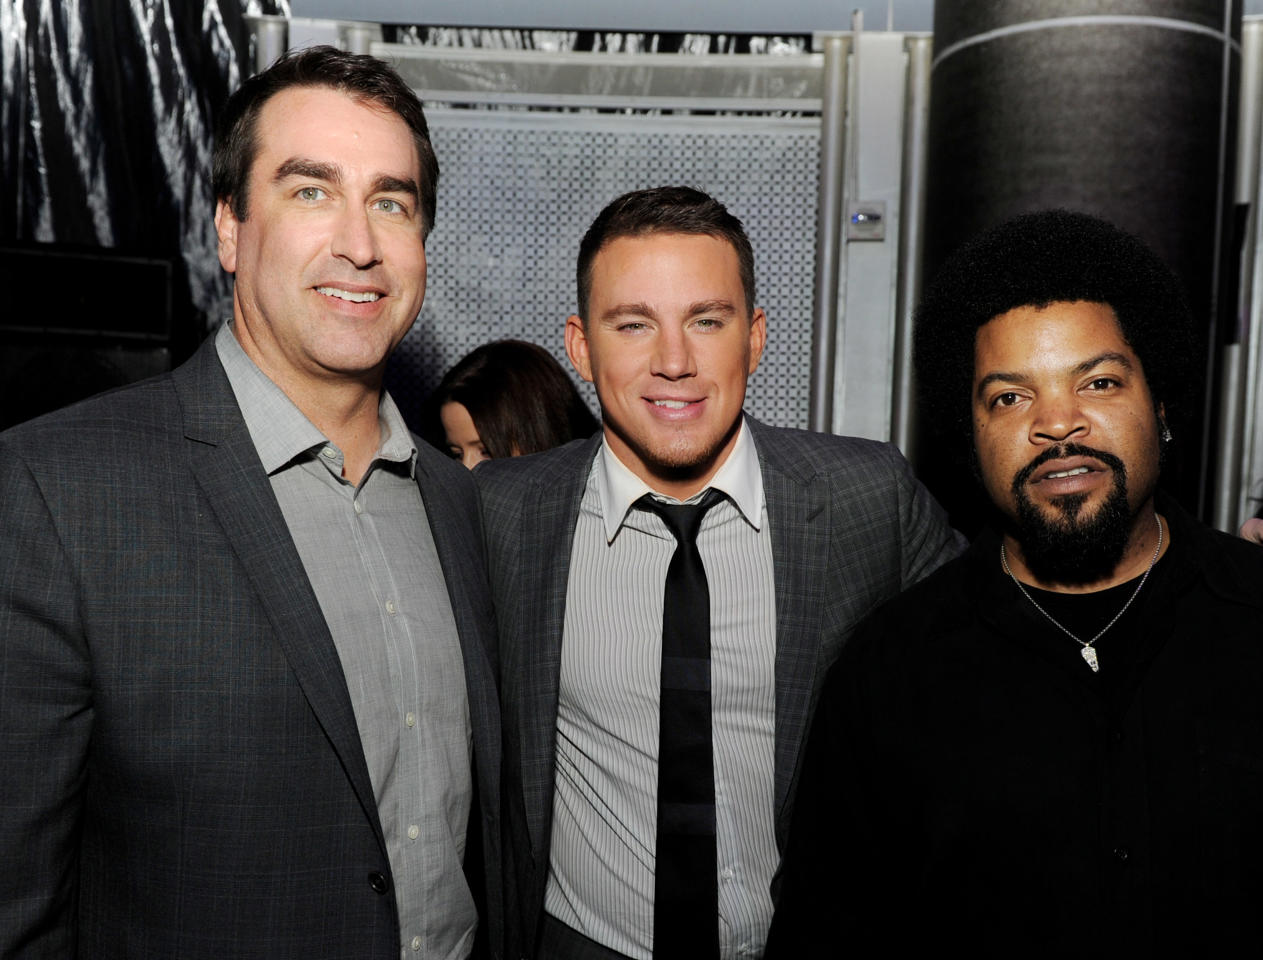 "LOS ANGELES, CA - MARCH 13:  (L-R) Actors Rob Riggle, Channing Tatum and Ice Cube pose at the after party for the premiere of Columbia Pictures' ""21 Jump Street"" at the Rolling Stone Restaurant & Lounge on March 13, 2012 in Los Angeles, California.  (Photo by Kevin Winter/Getty Images)"